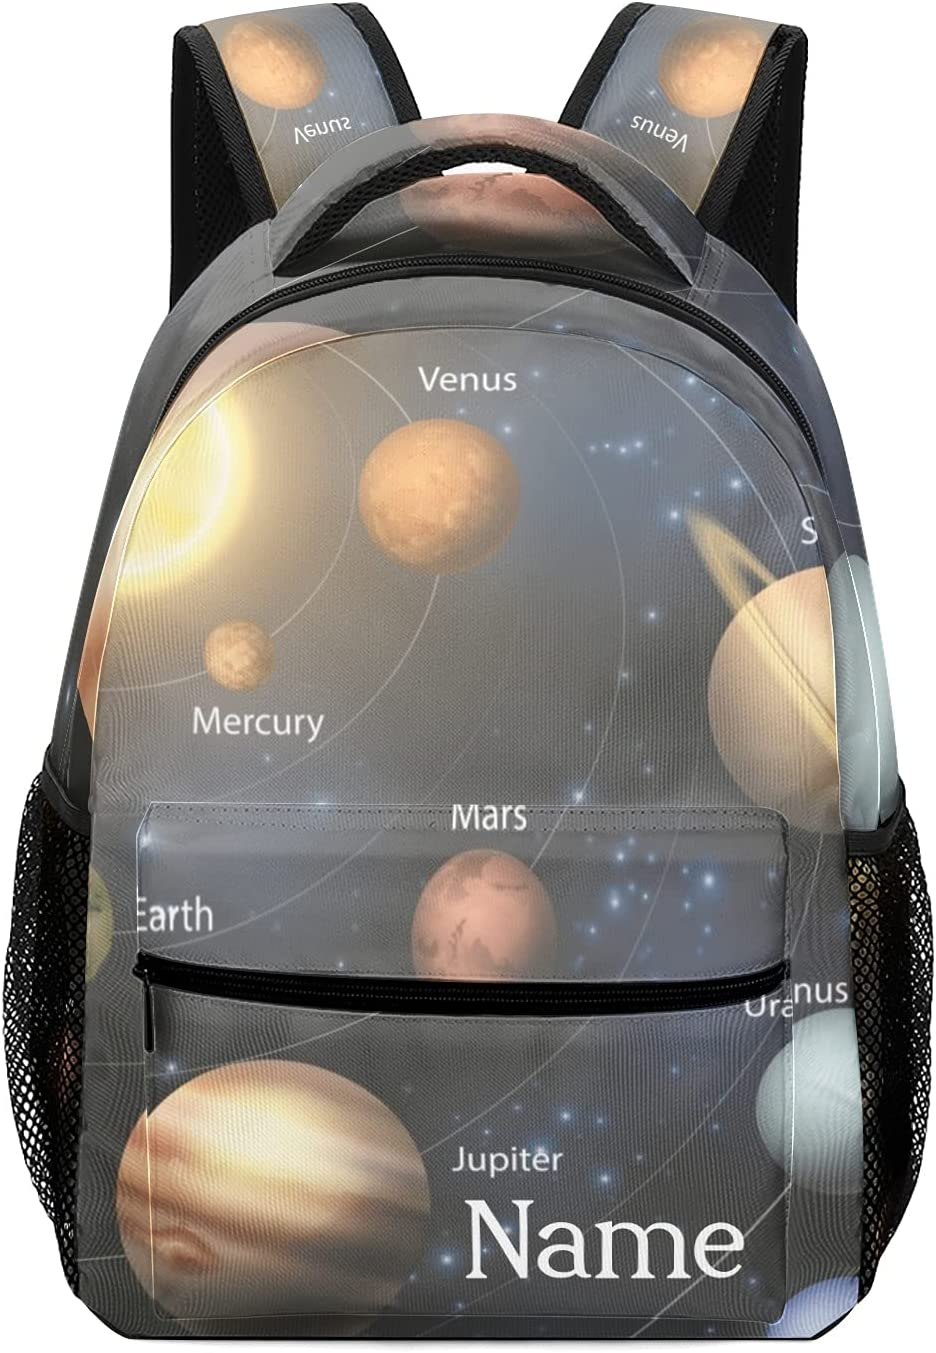 Free Shipping New Personalized Solar System Planet Max 68% OFF Backpack with Bag W School Name